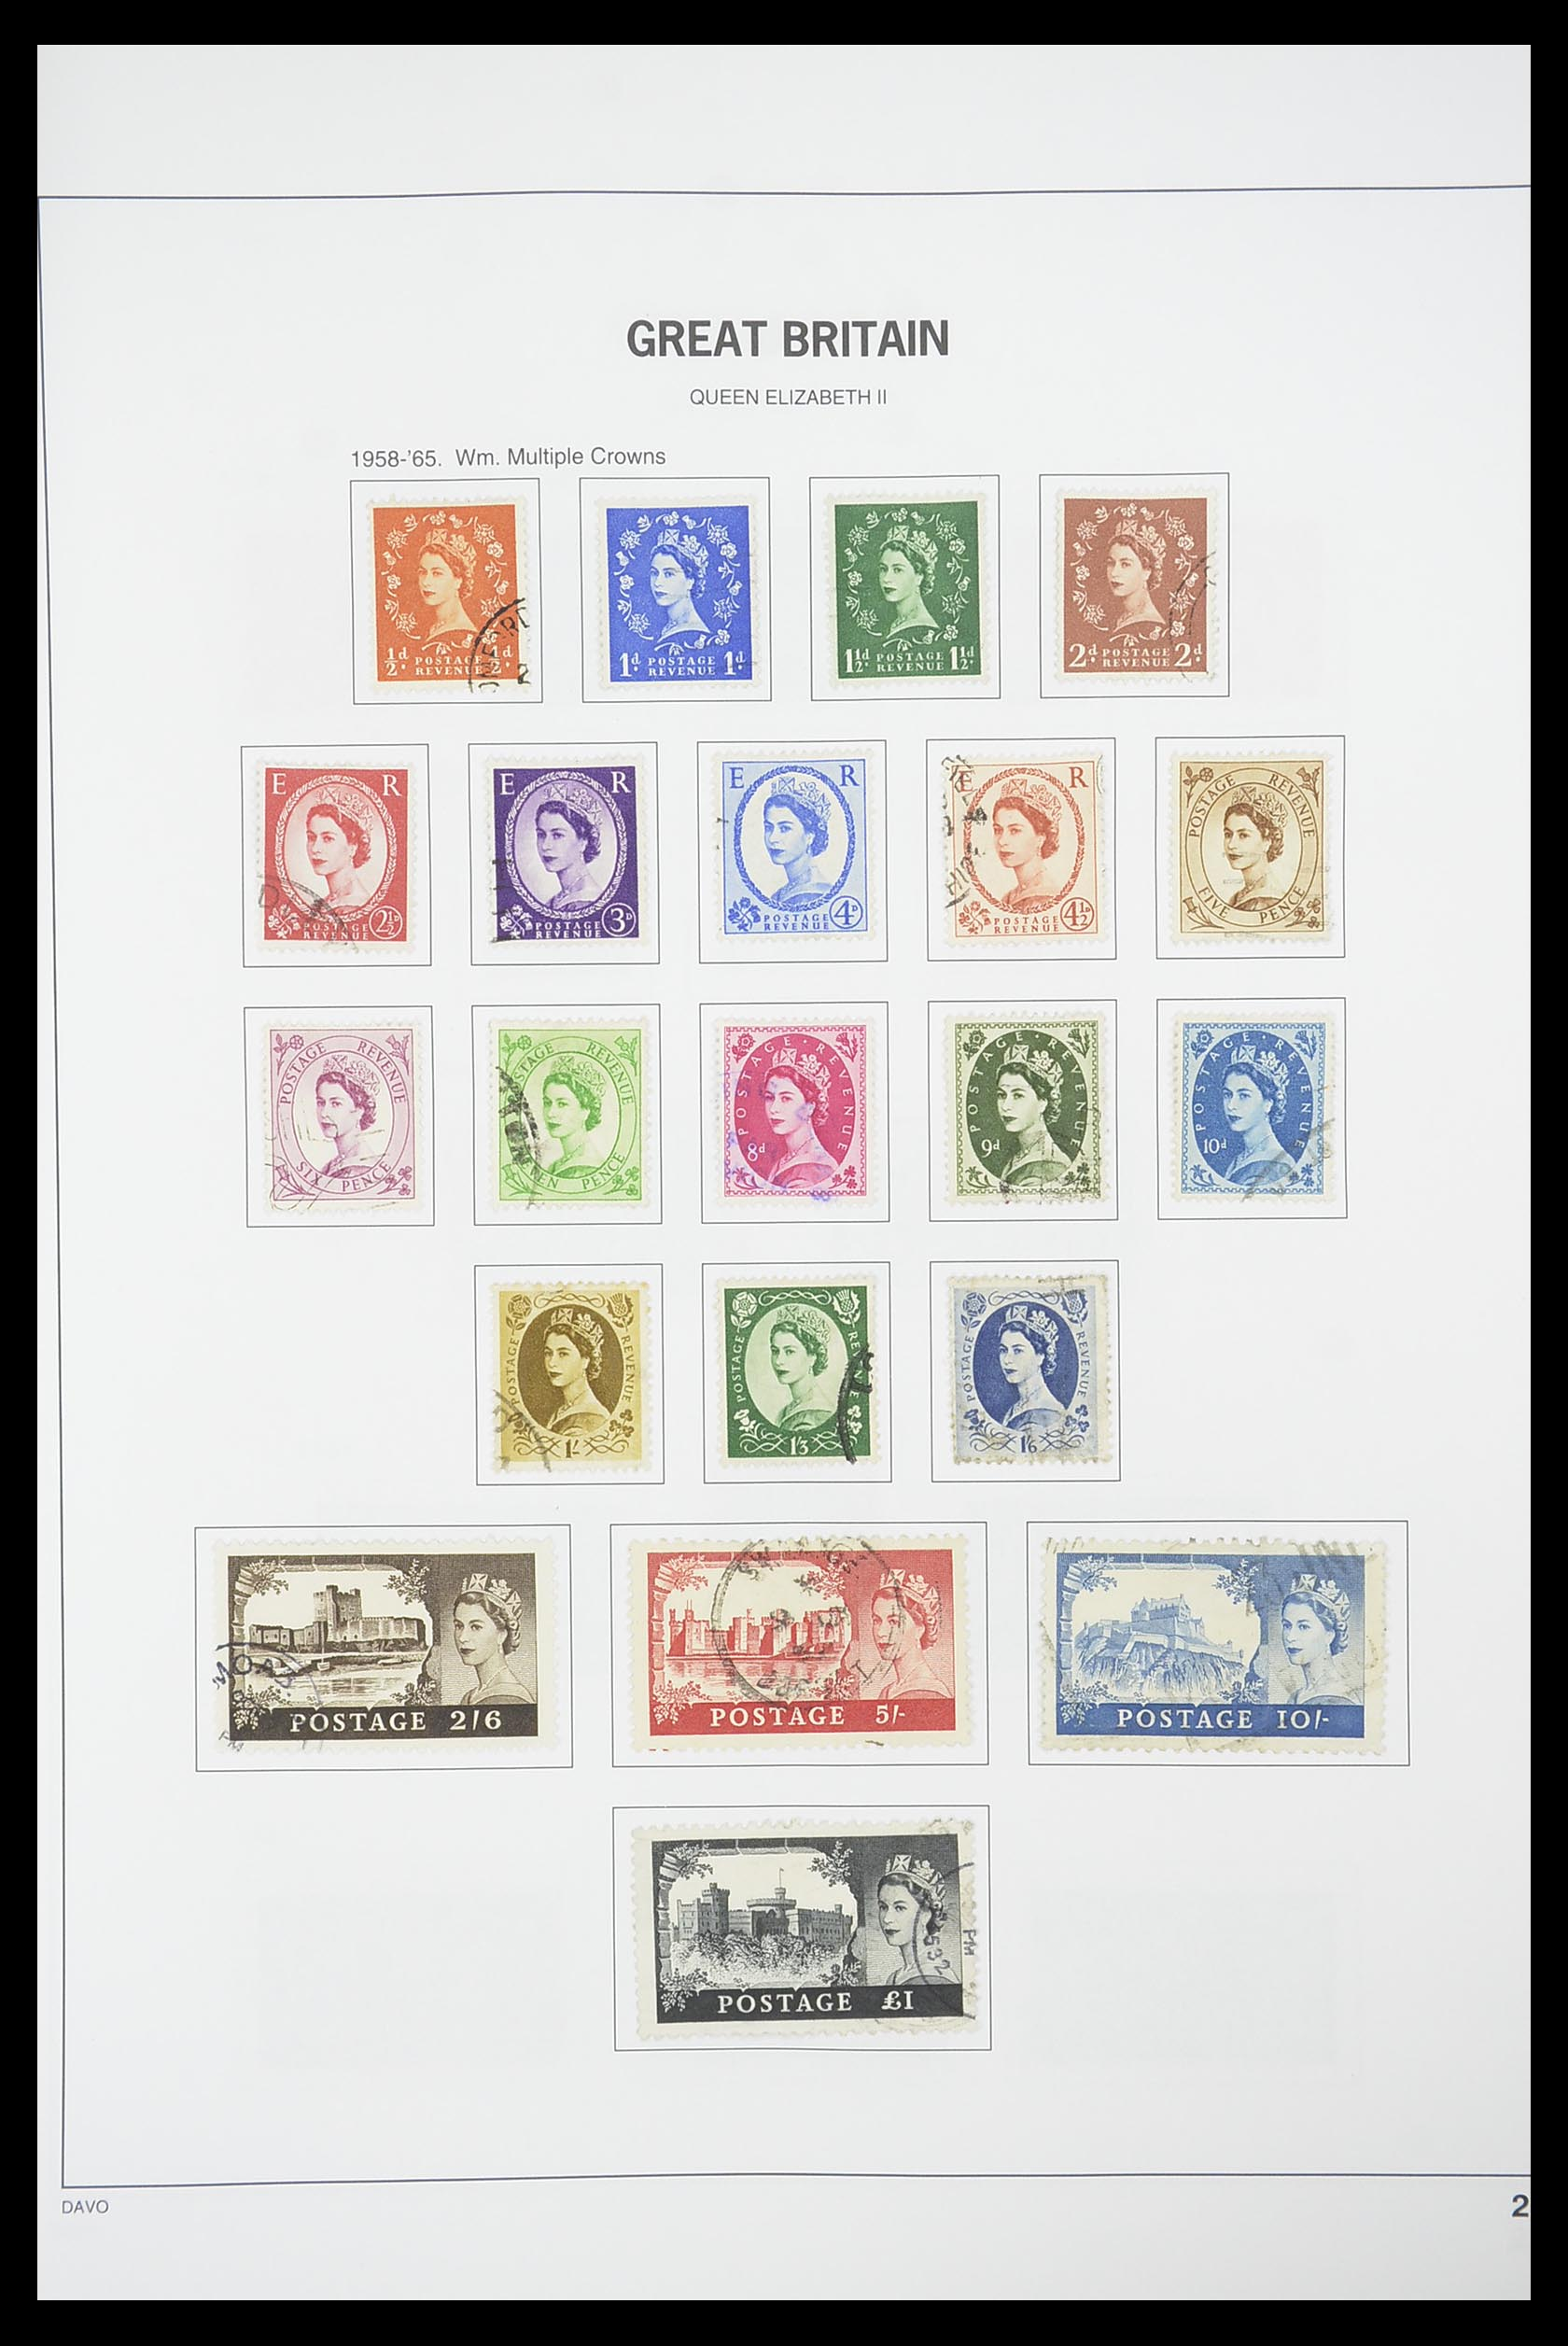 33898 020 - Stamp collection 33898 Great Britain 1840-2006.